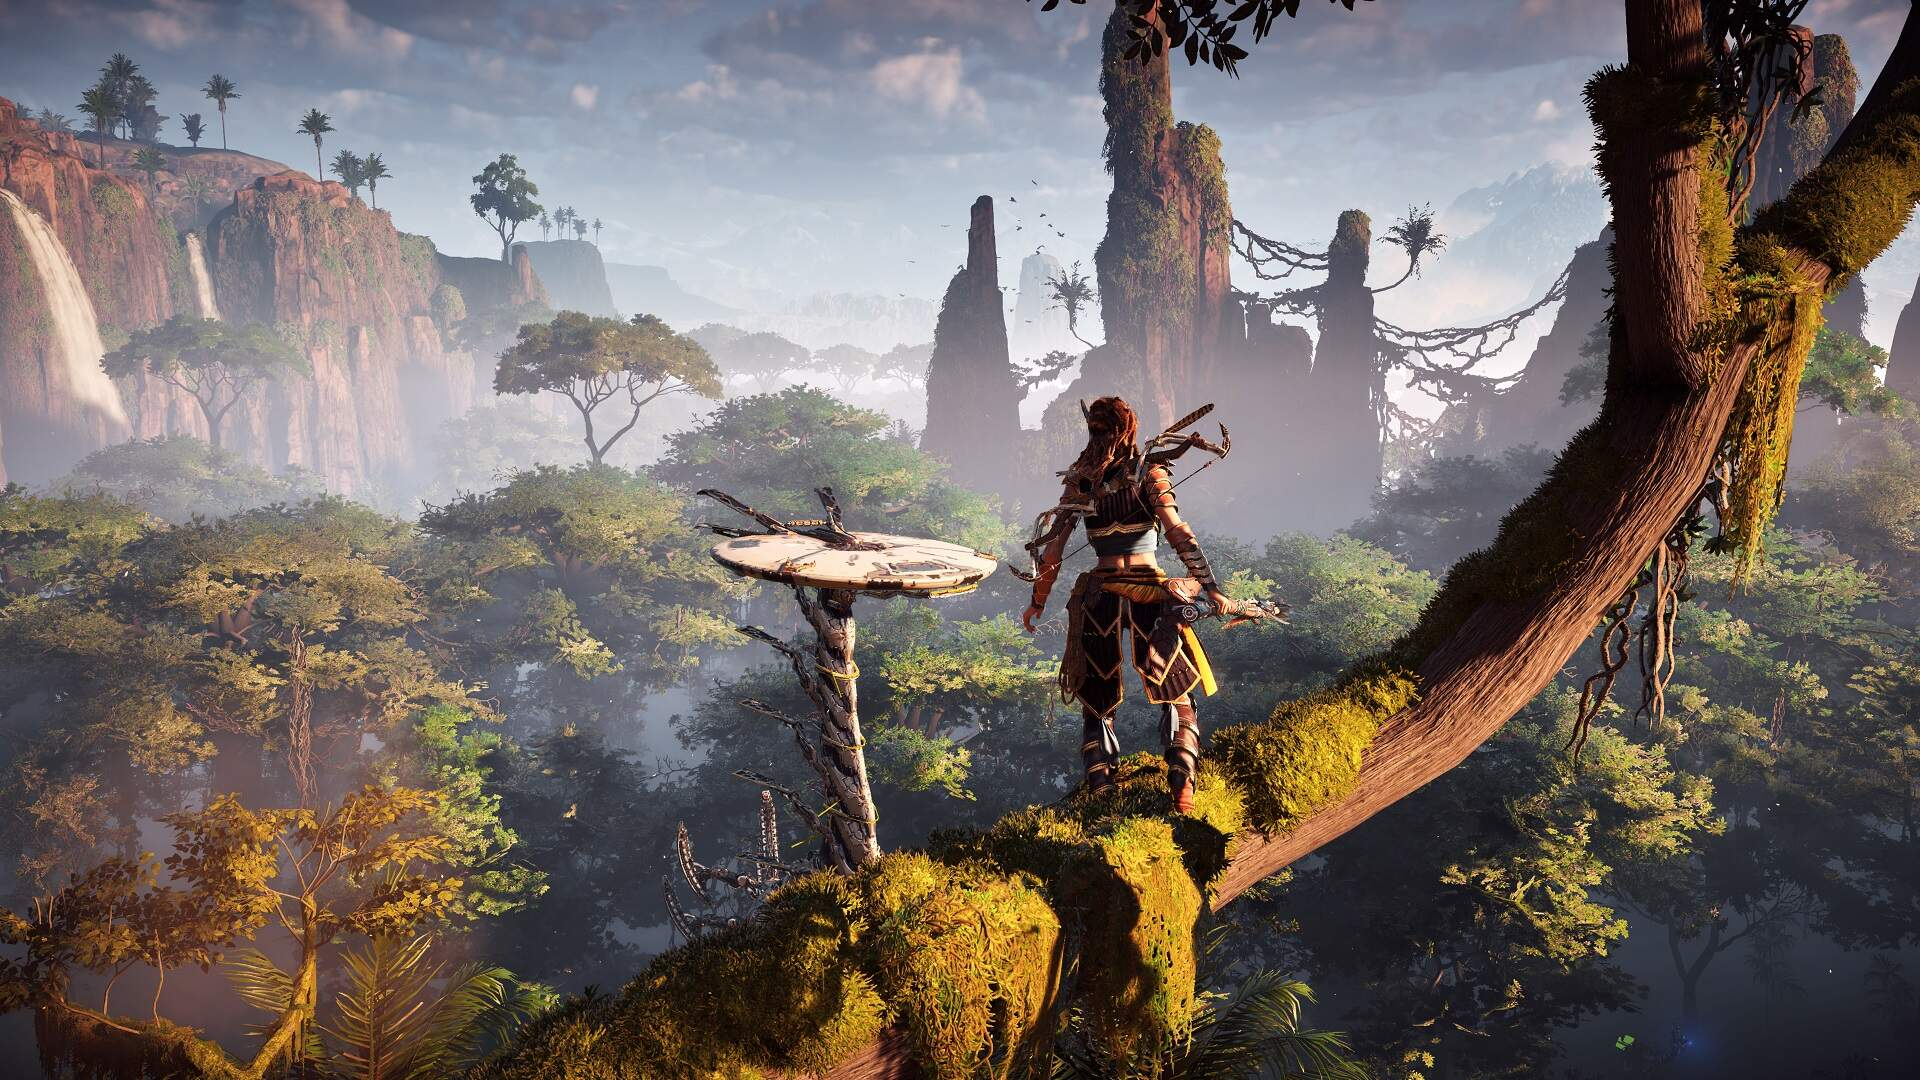 Horizon Zero Dawn Weapons: How to Get the Best Weapons